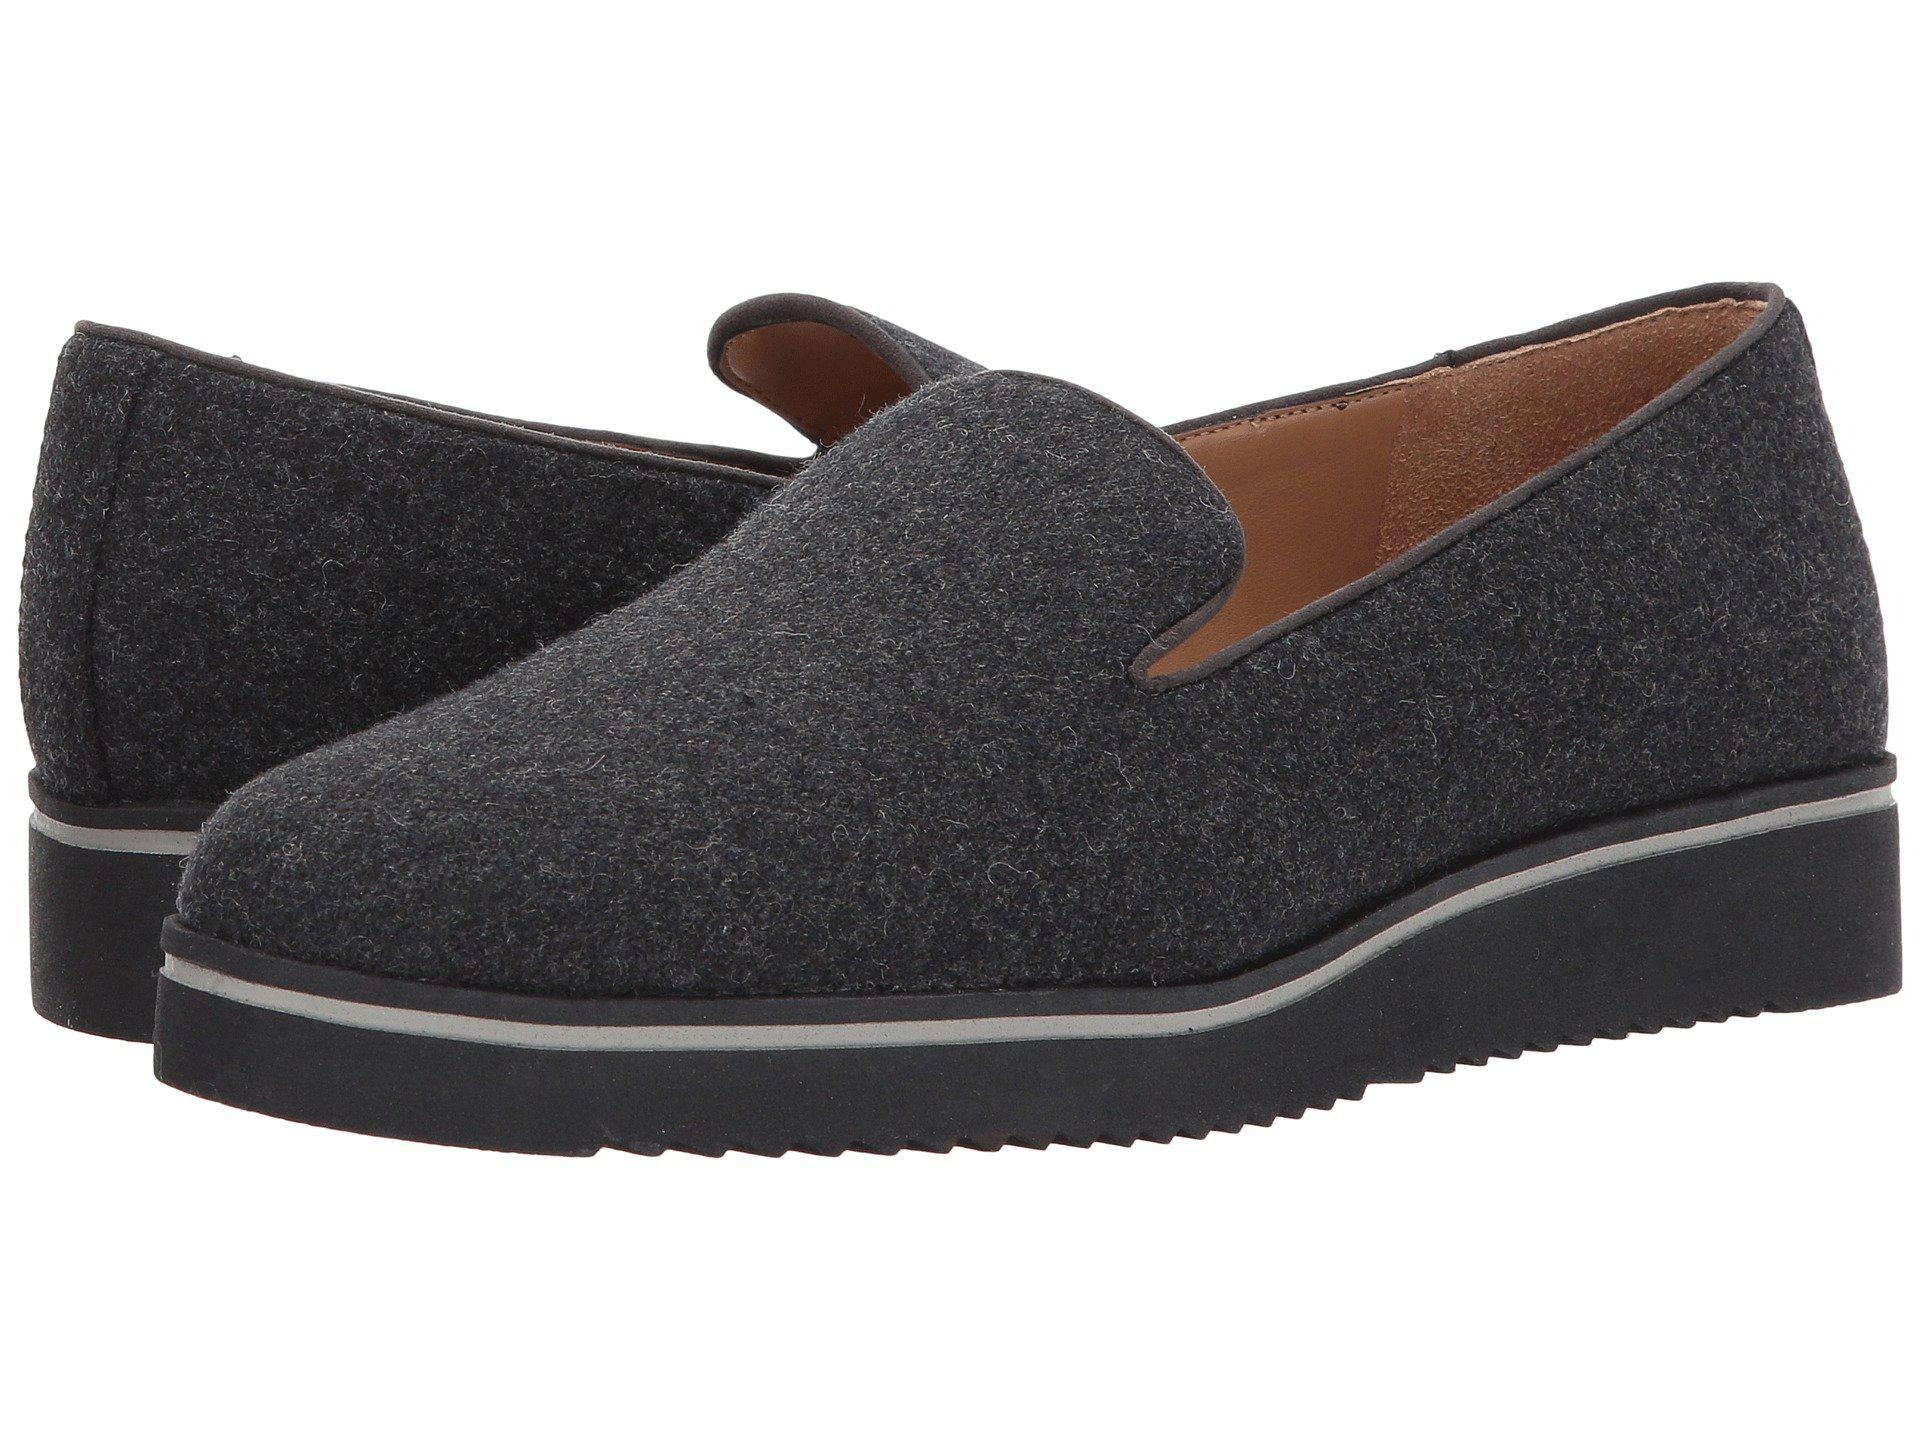 d61ba74a209 Lyst - Franco Sarto Fabrina Loafers in Gray - Save 44%